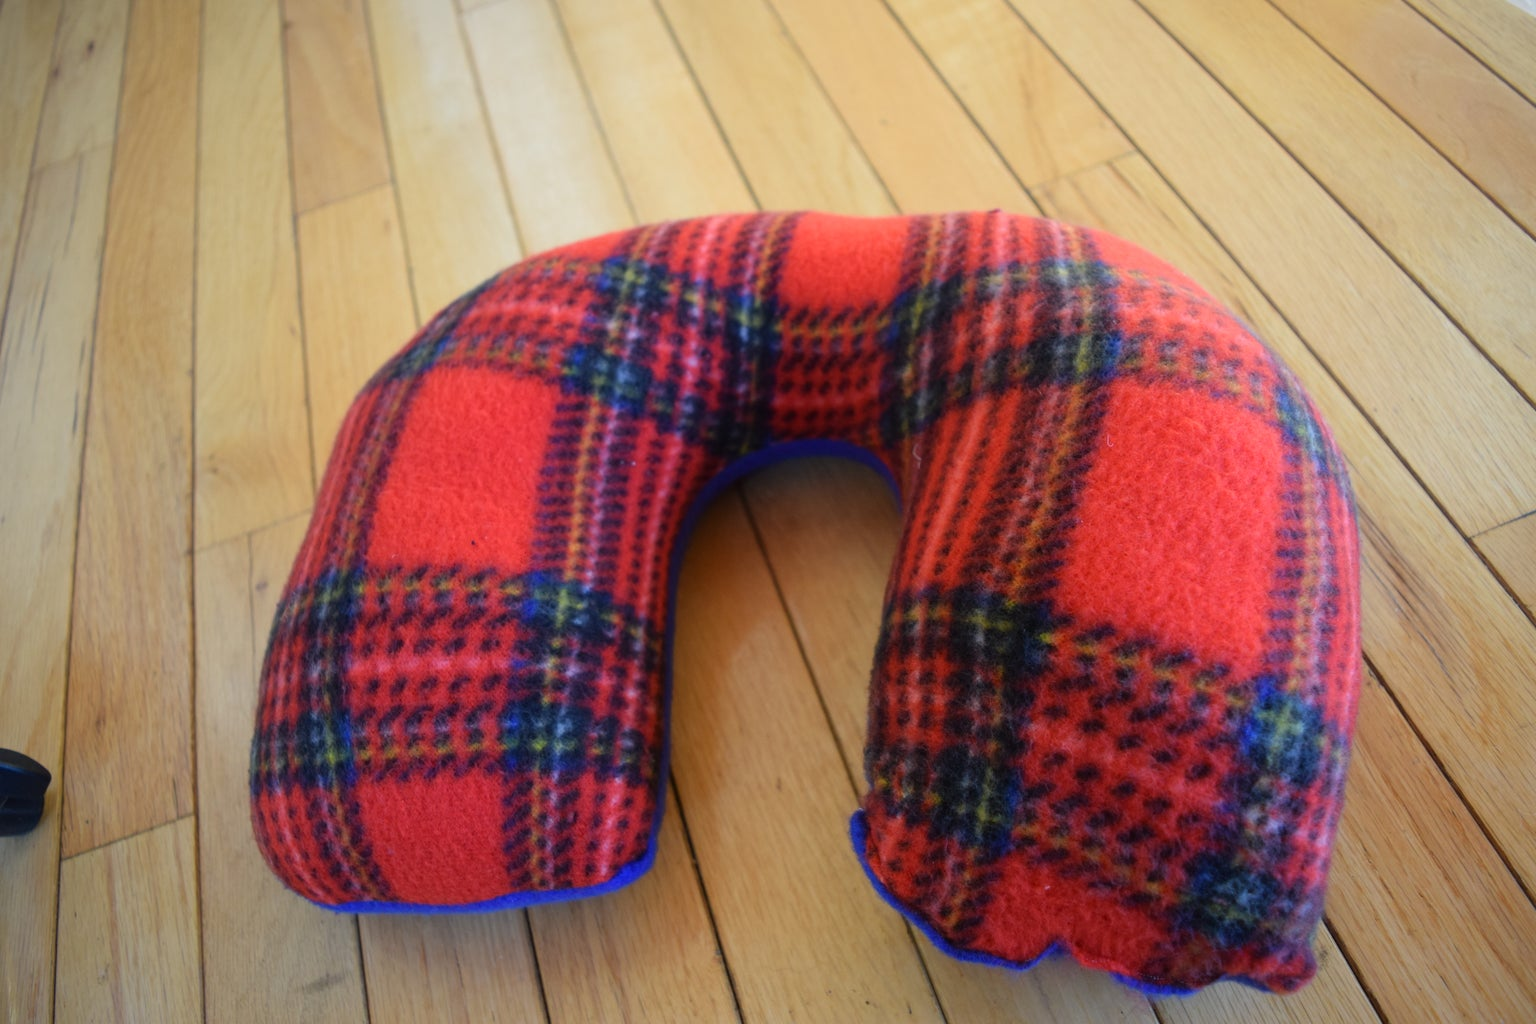 The Neck Pillow (part Two)